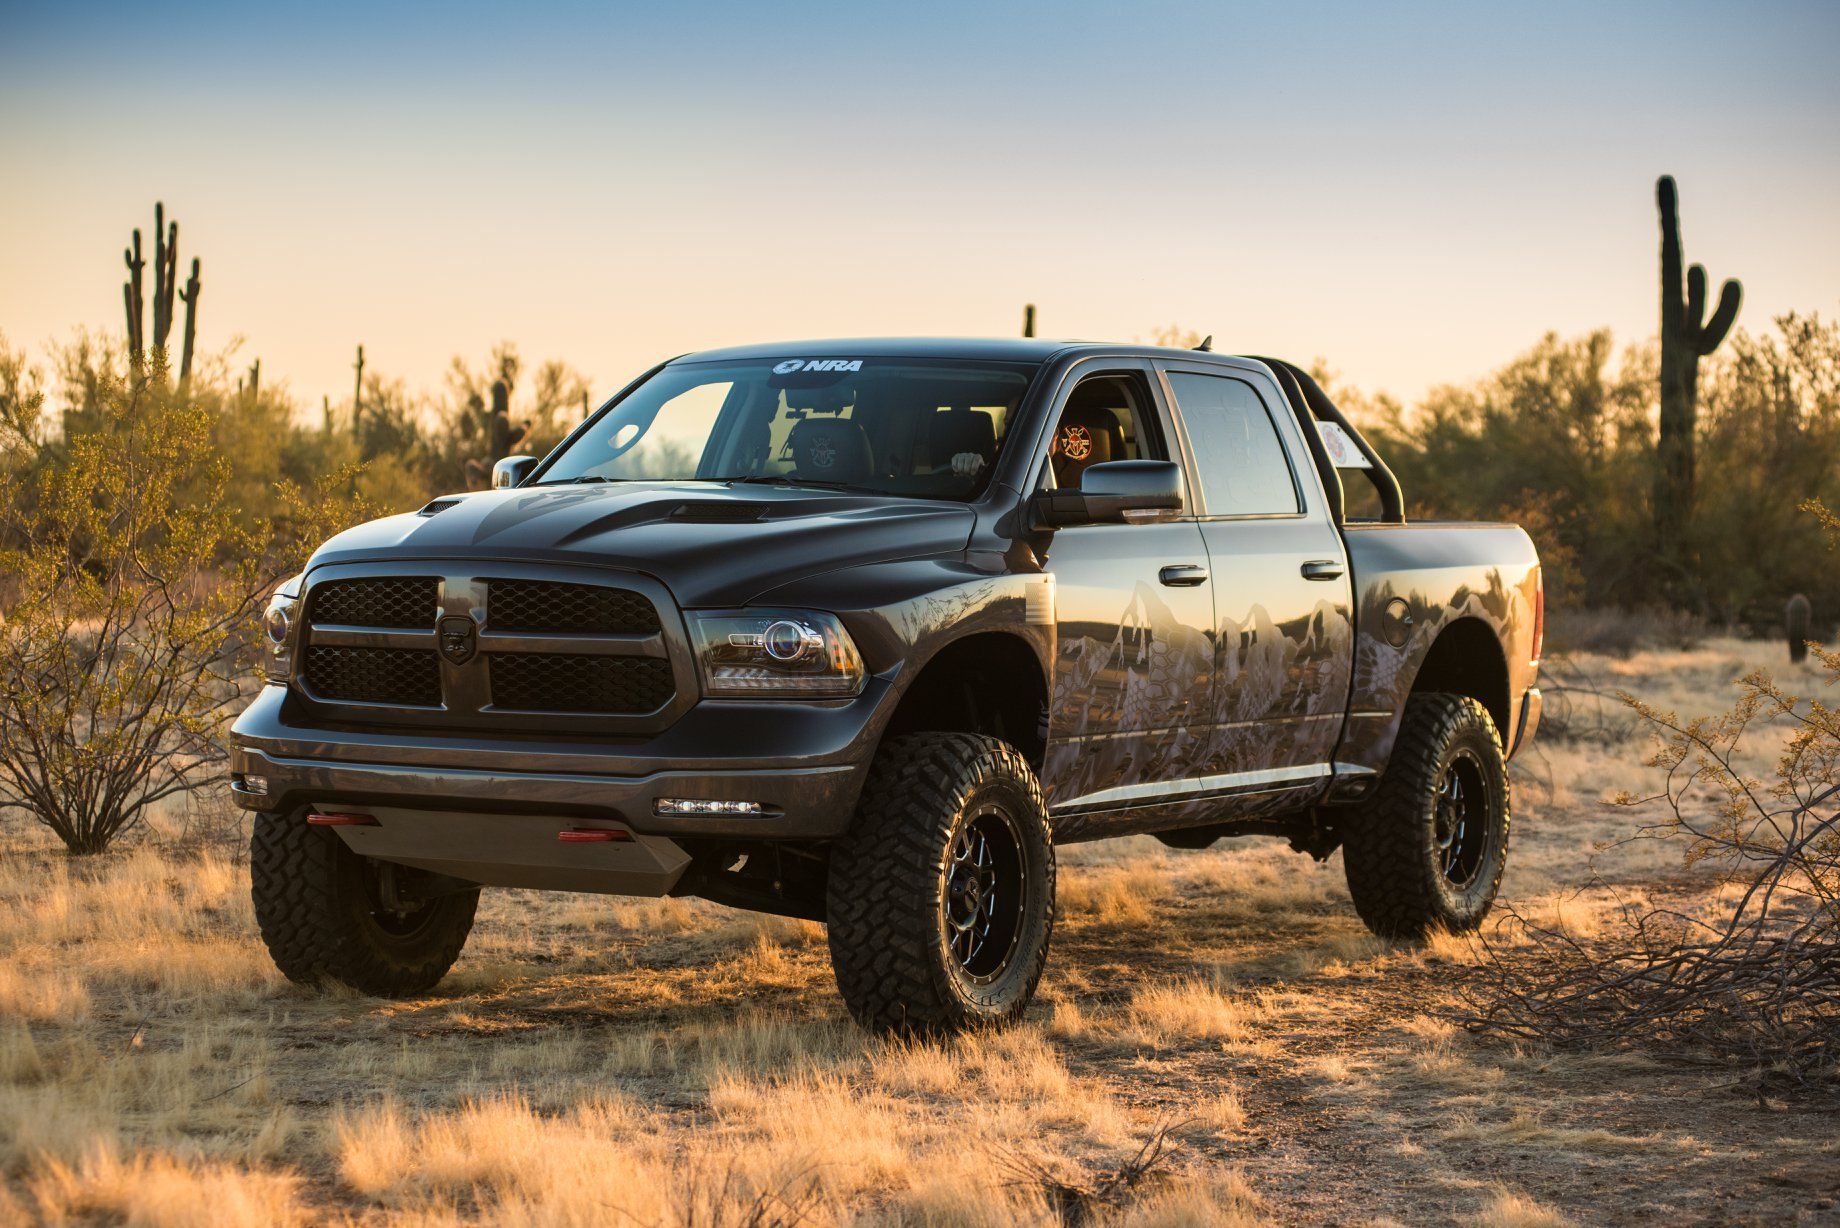 small resolution of get your kore suspension at www koreraceshop com ram1500 levelingkits nra bestlevelingkitwithfourshocks